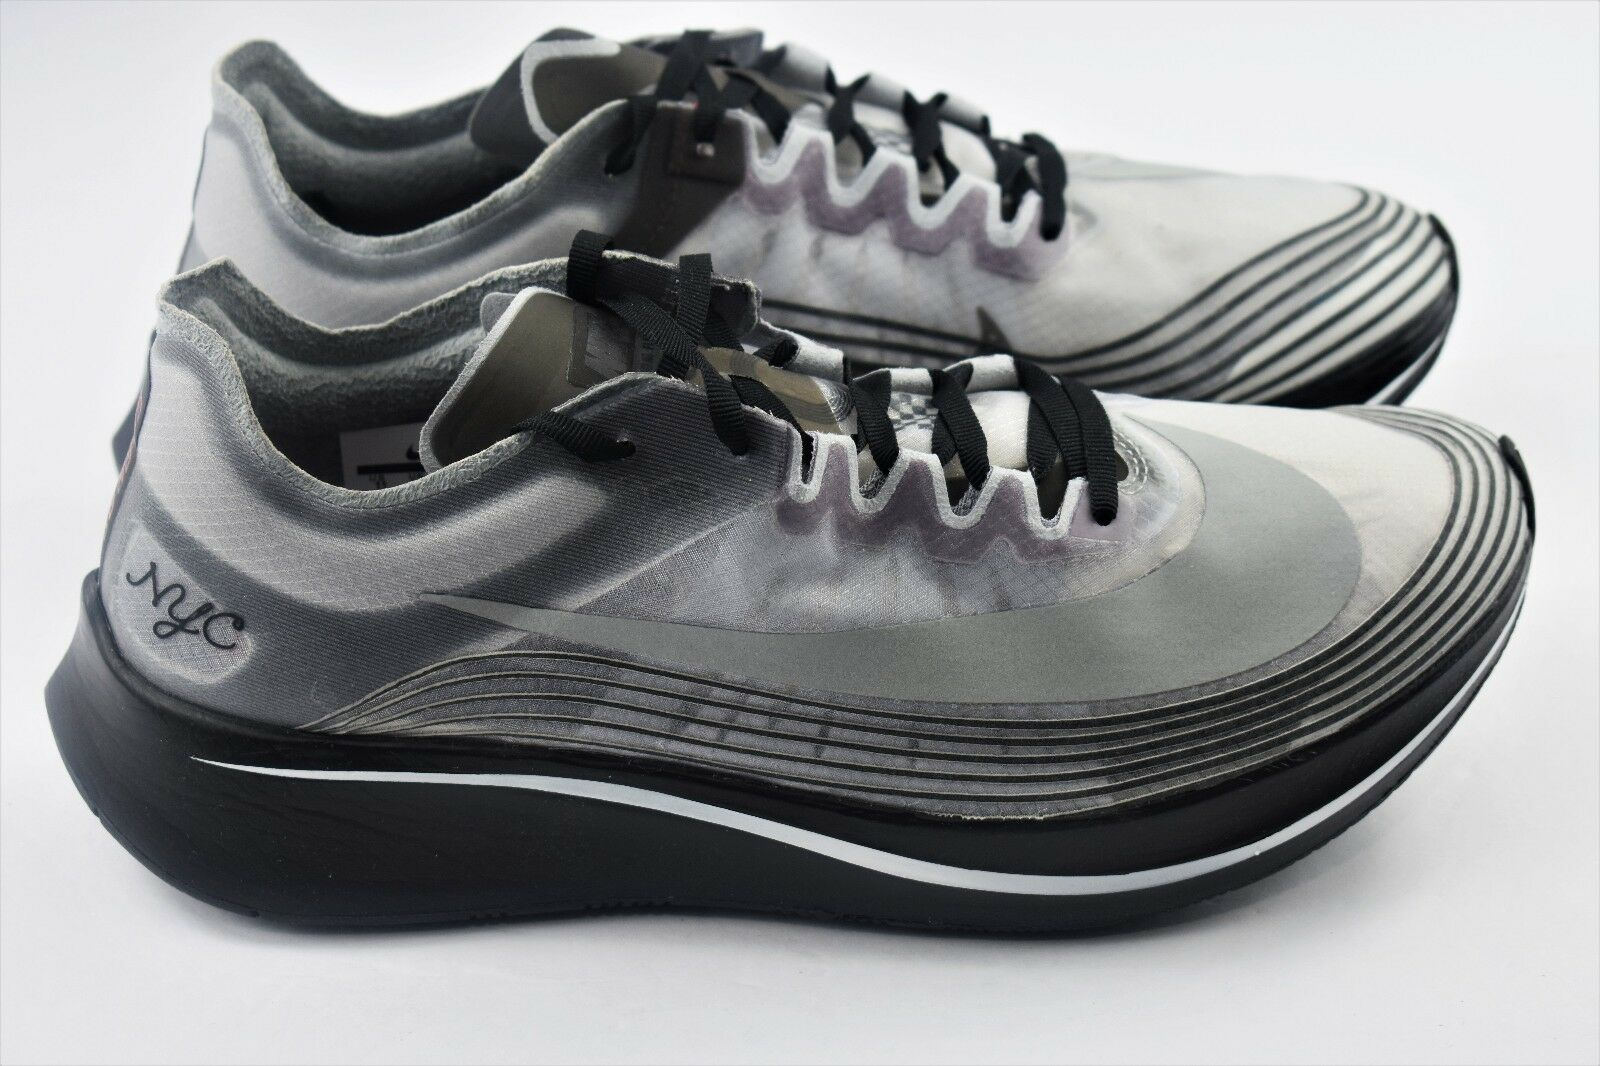 Nike Zoom Fly NYC Mens Size 6.5 SP Running Shoes Women Size 8 Nikelab AH5088 001